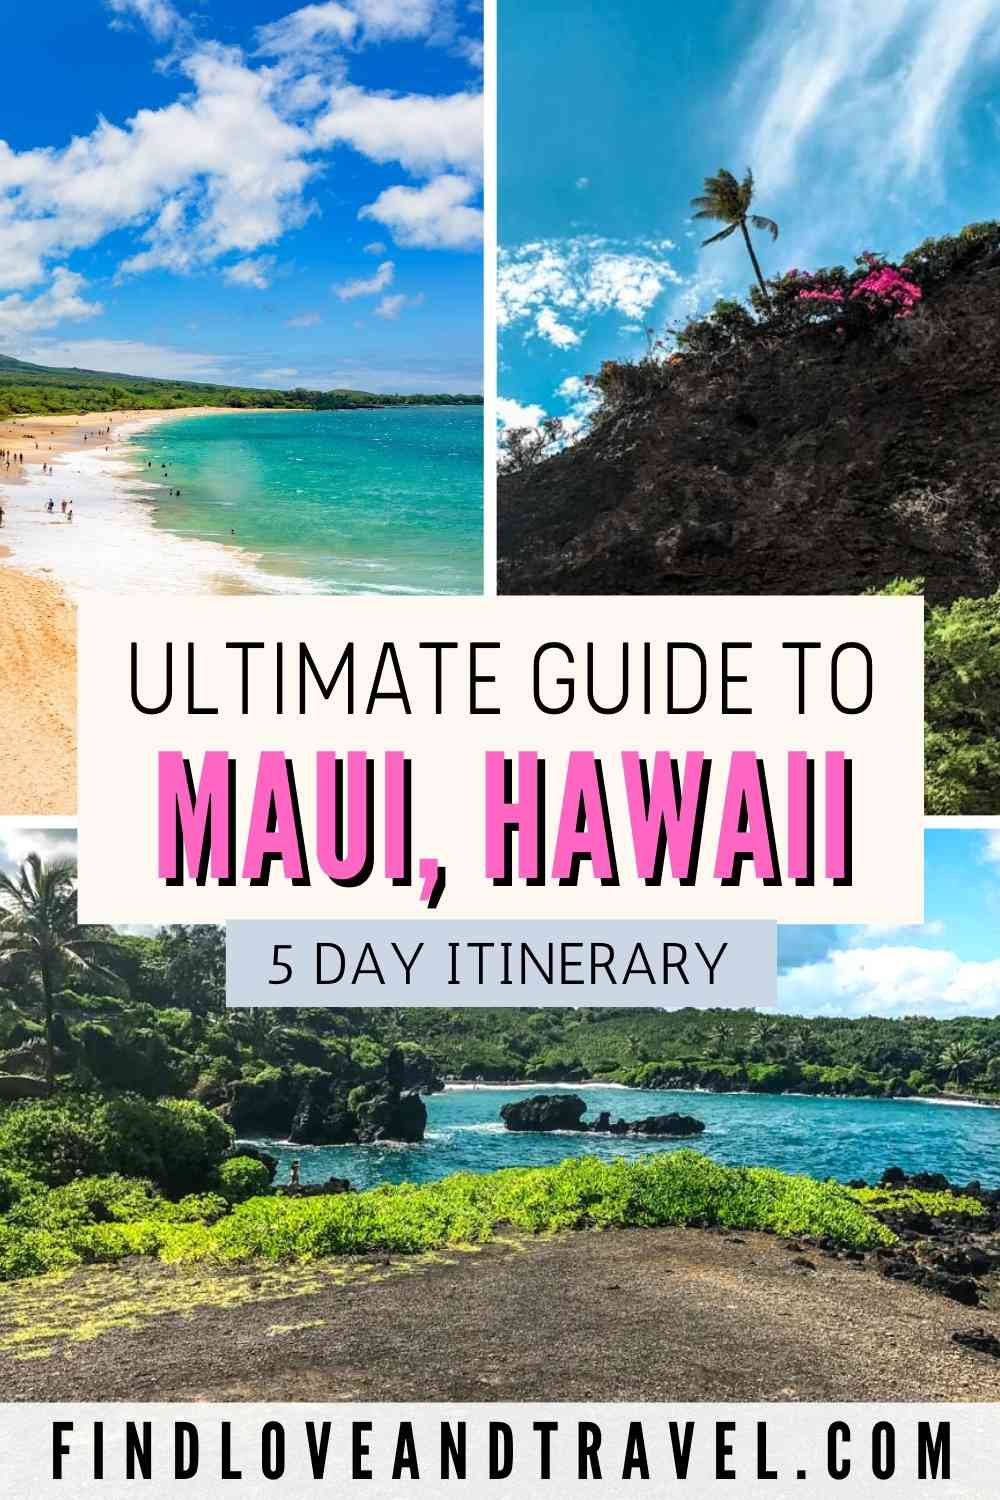 Your complete guide to spending the most epic 5 days in Maui, Hawaii, Itinerary